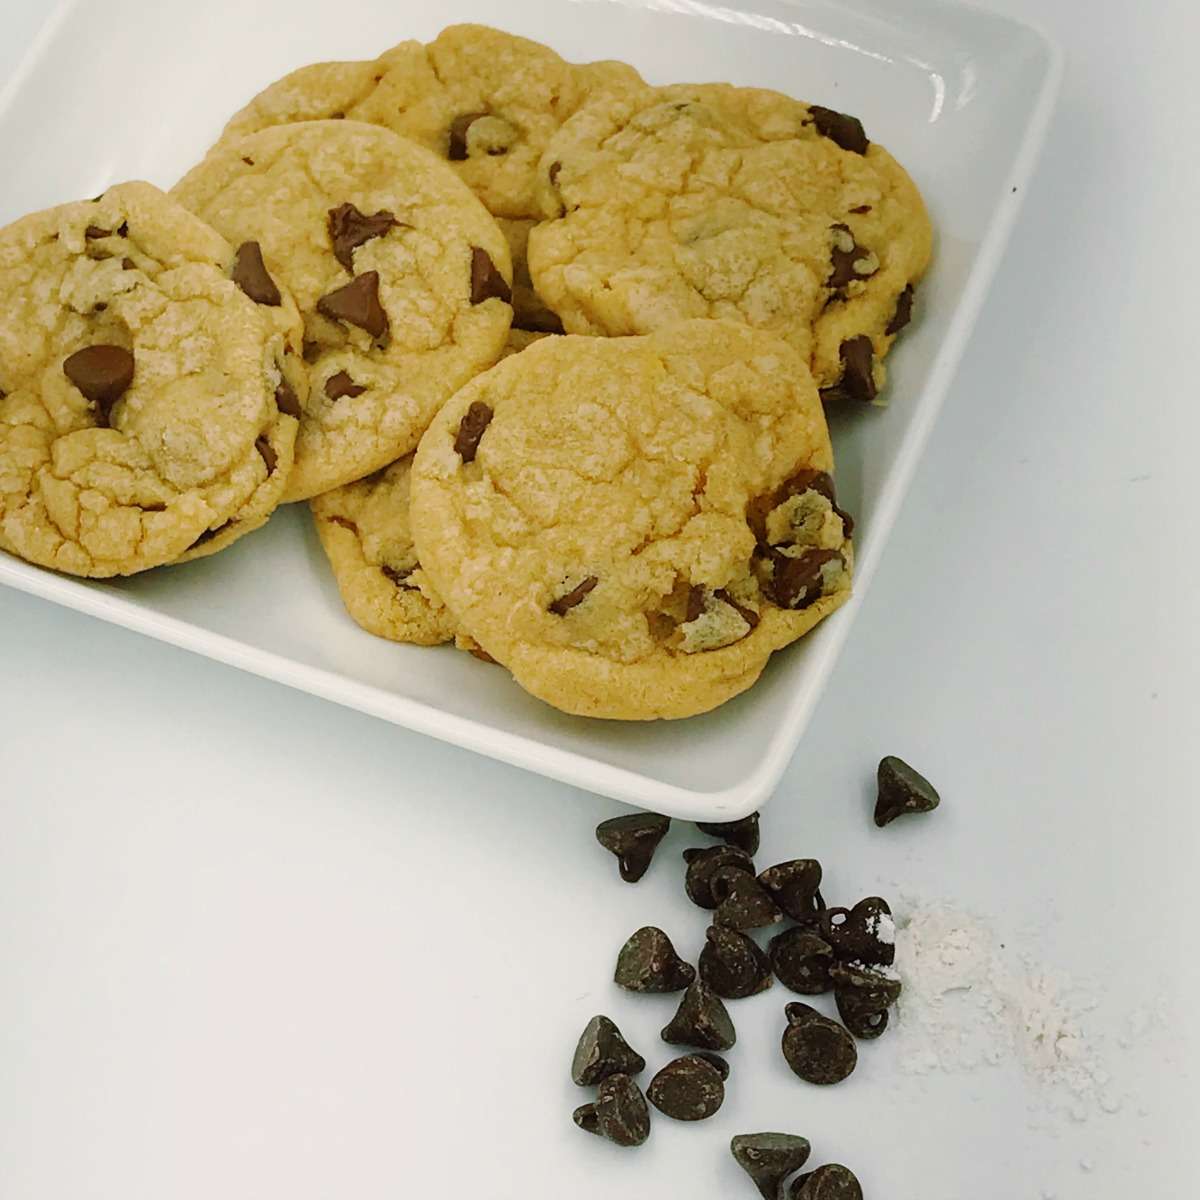 The perfect soft chocolate chip cookie even hours after it's cooled!